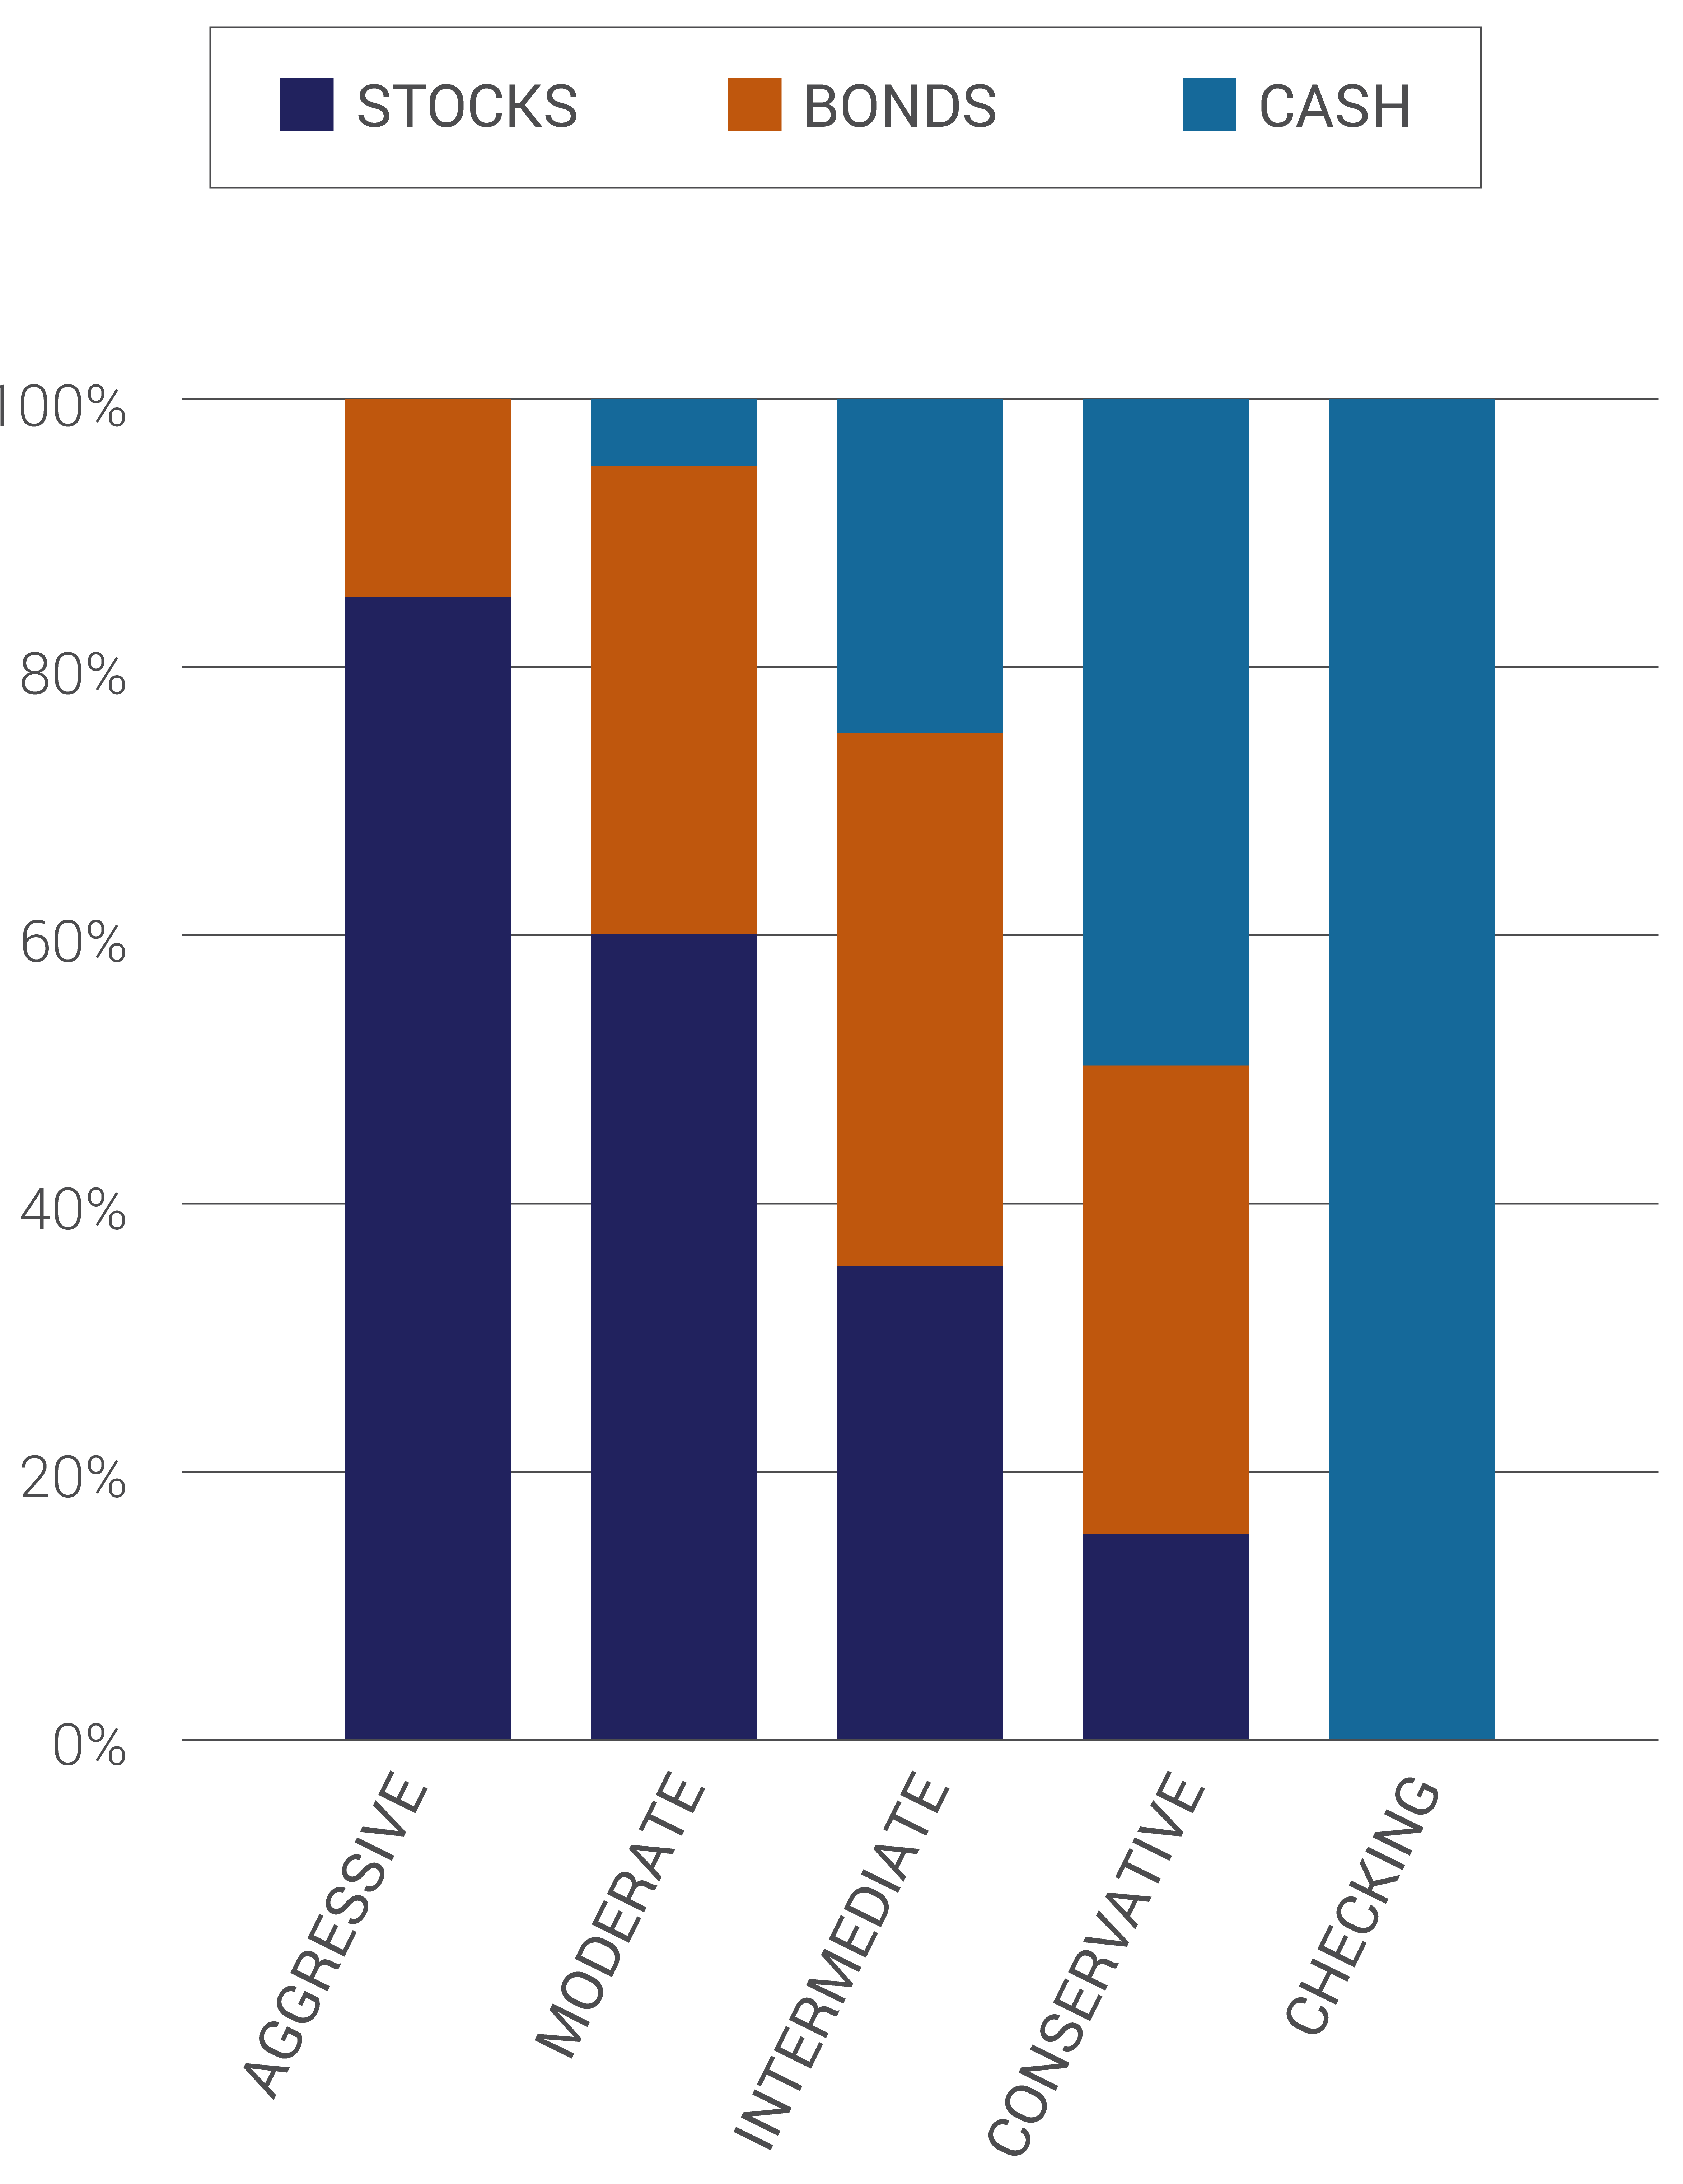 The bar chart outlines the asset mix for the four risk-based investment portfolio options and the checking option. The Aggressive portfolio consists of 85% stocks and 15% bonds. The Moderate portfolio consists of 60% stocks, 35% bonds, and 5% cash. The Intermediate portfolio consists of 35% stocks, 40% bonds, and 25% cash. The Conservative portfolio consists of 15% stocks, 35% bonds, and 50% cash. The Checking option consists of 100% cash.